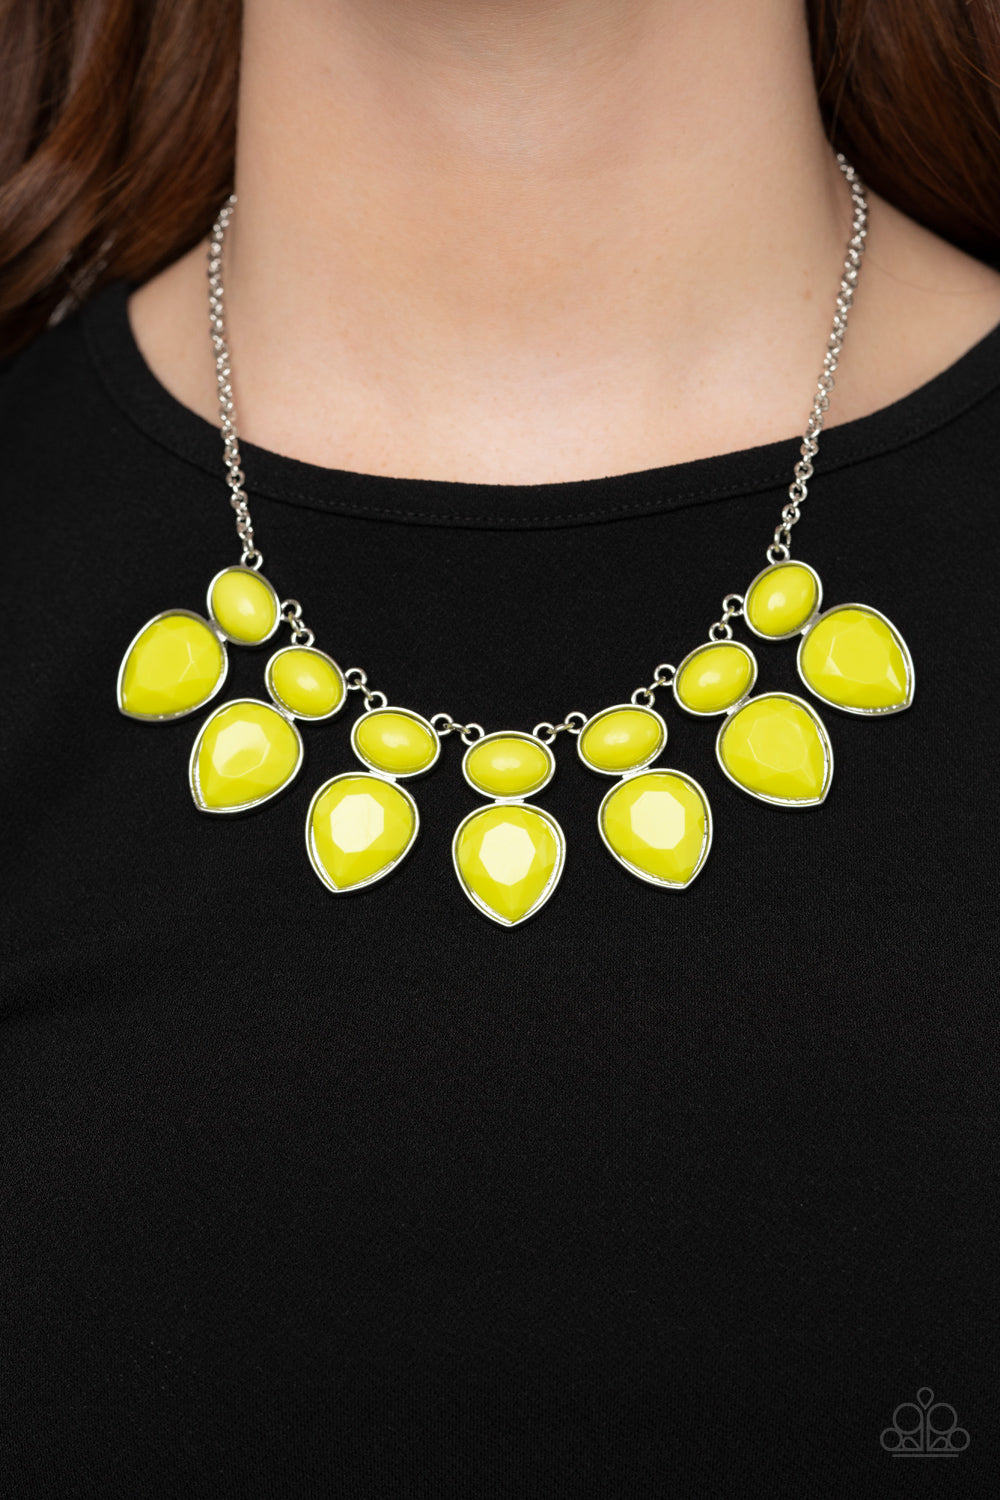 Paparazzi Jewelry & Accessories - Modern Masquerade - Yellow Necklace. Bling By Titia Boutique